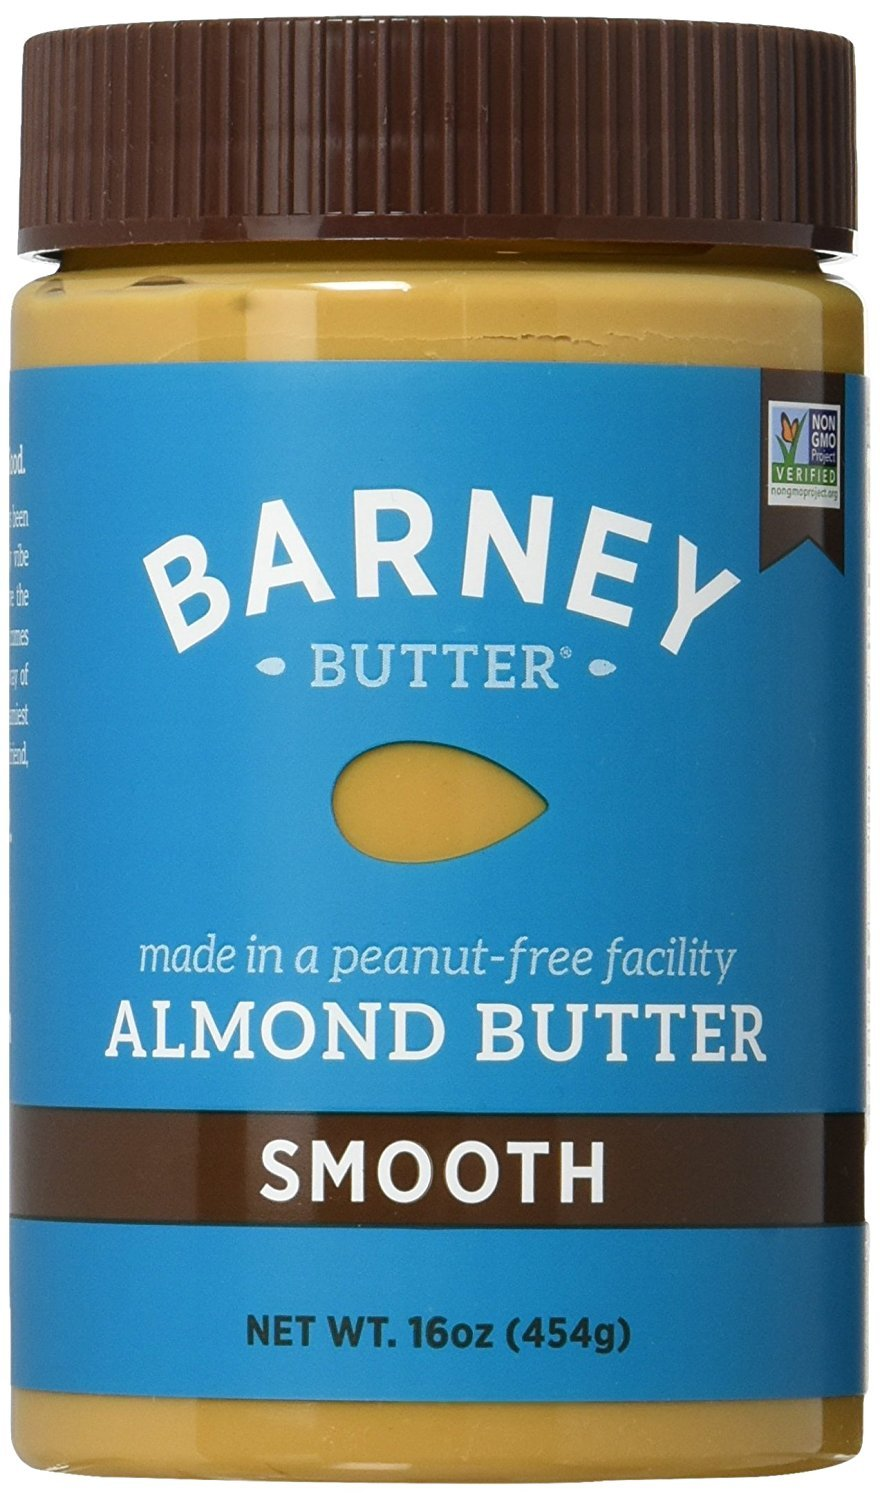 Barney & Co Almond Butter, Smooth, 16 Oz (Pack of 4) by Barney Butter